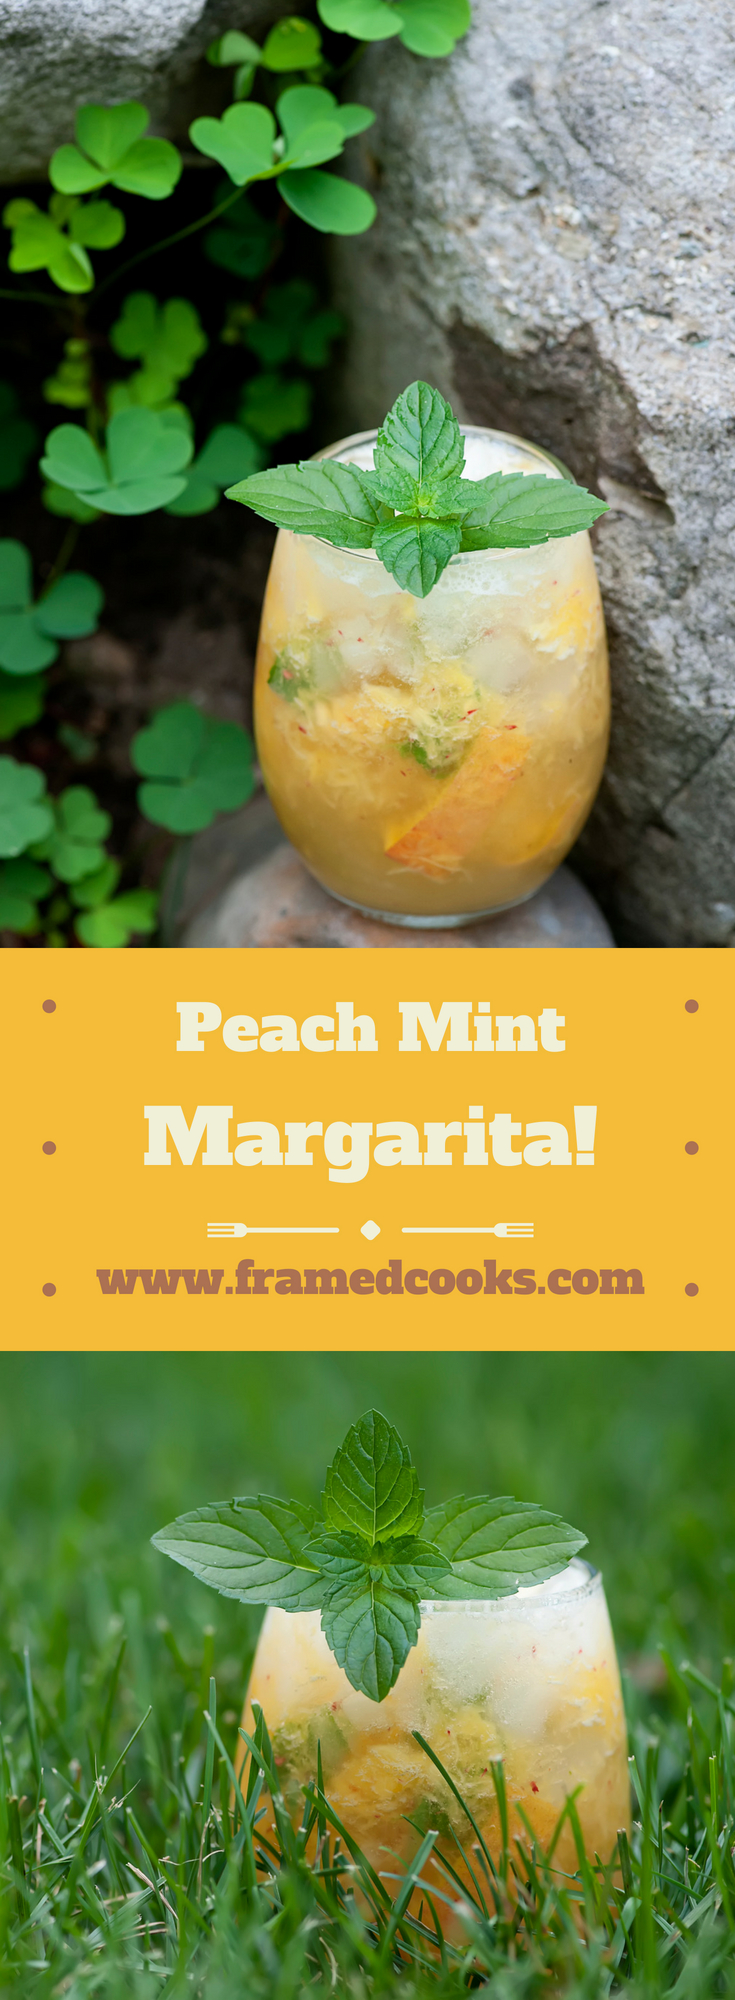 Say cheers to summertime with this easy recipe for a peach mint margarita.  Welcome to your new favorite warm weather cocktail!